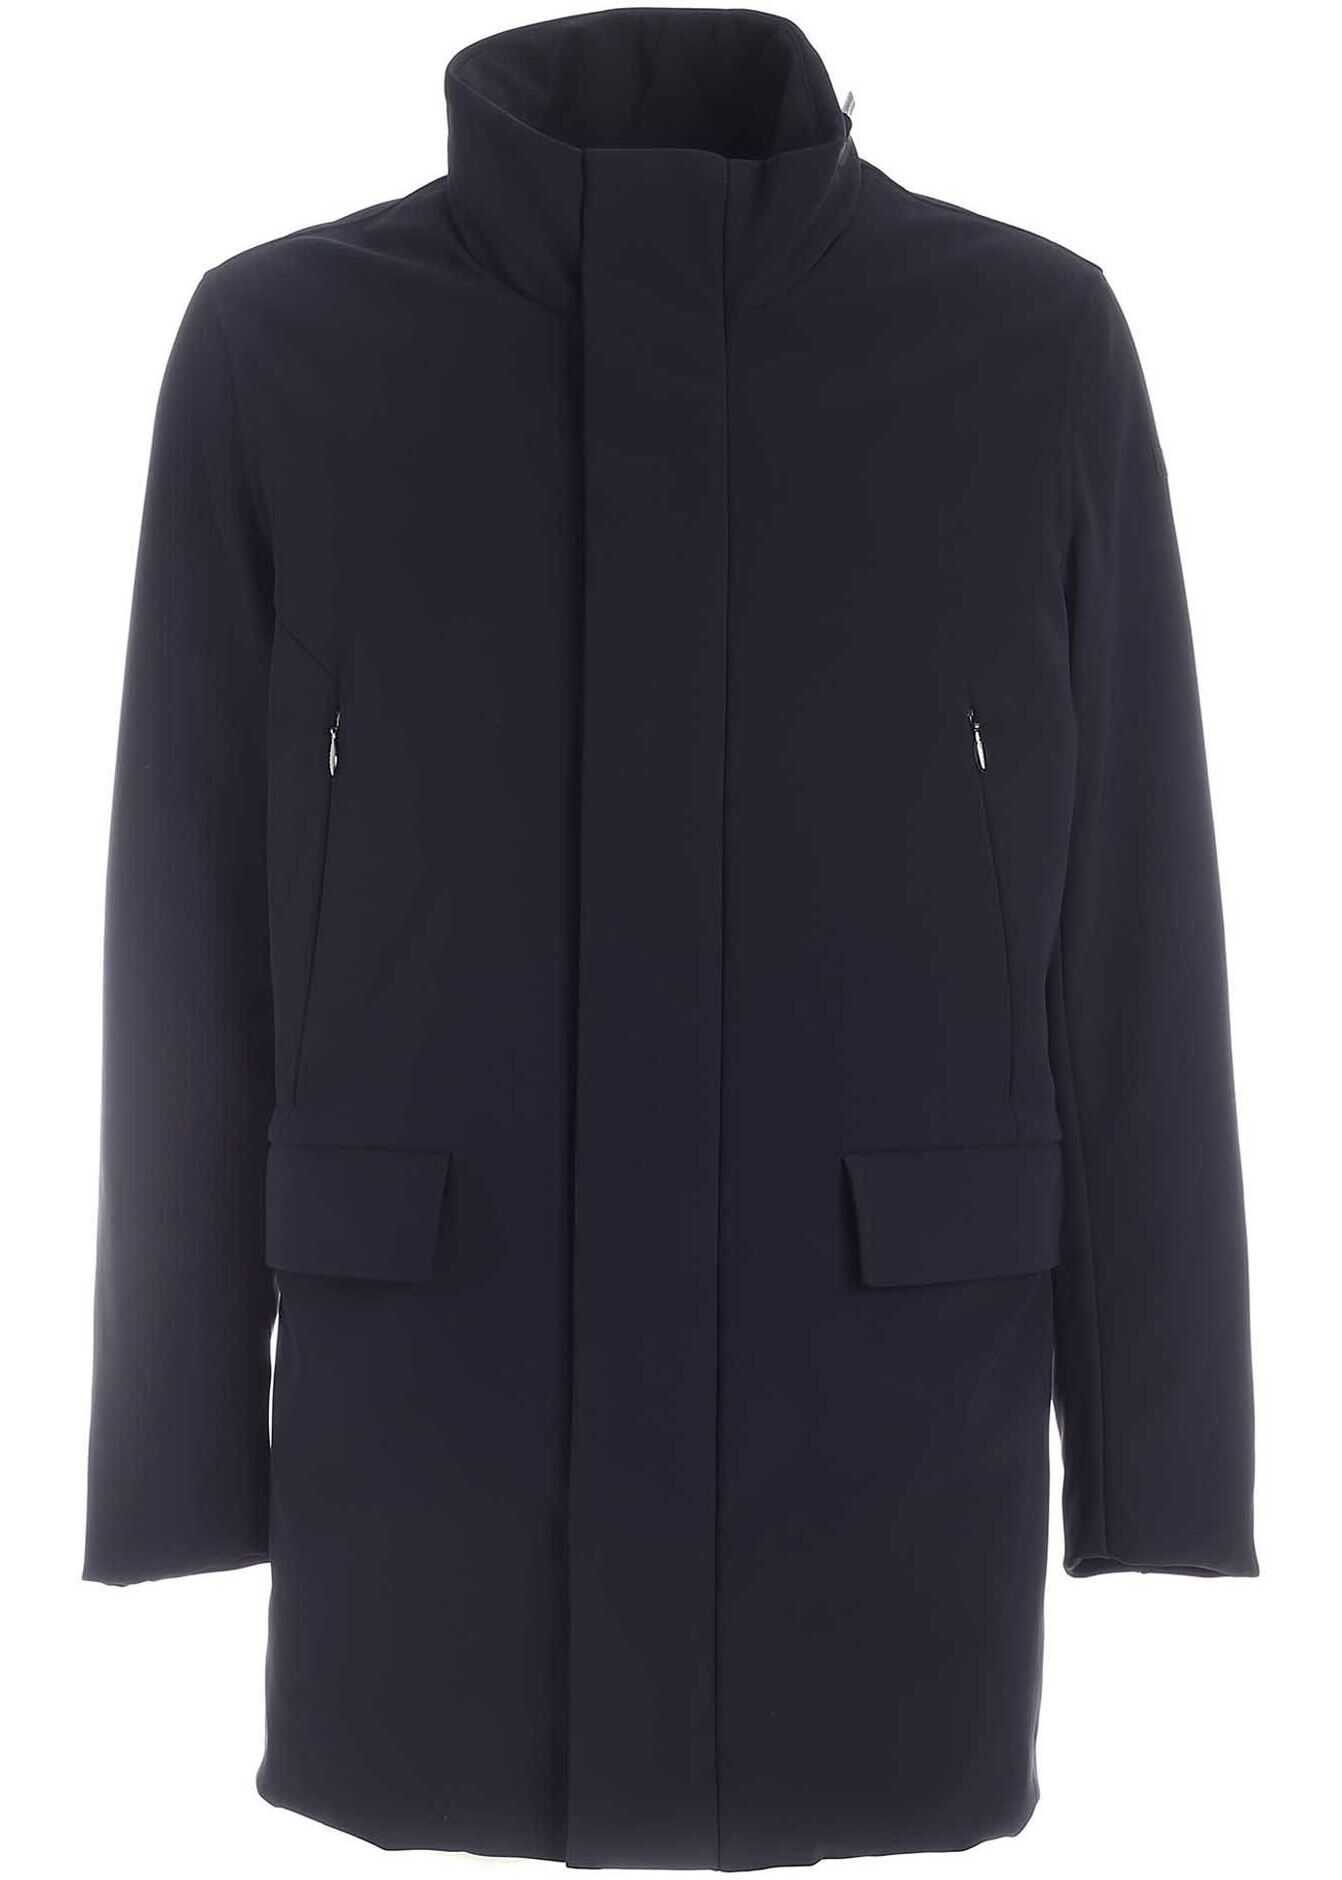 RRD Roberto Ricci Designs Winter Rain Coat In Blue Blue imagine